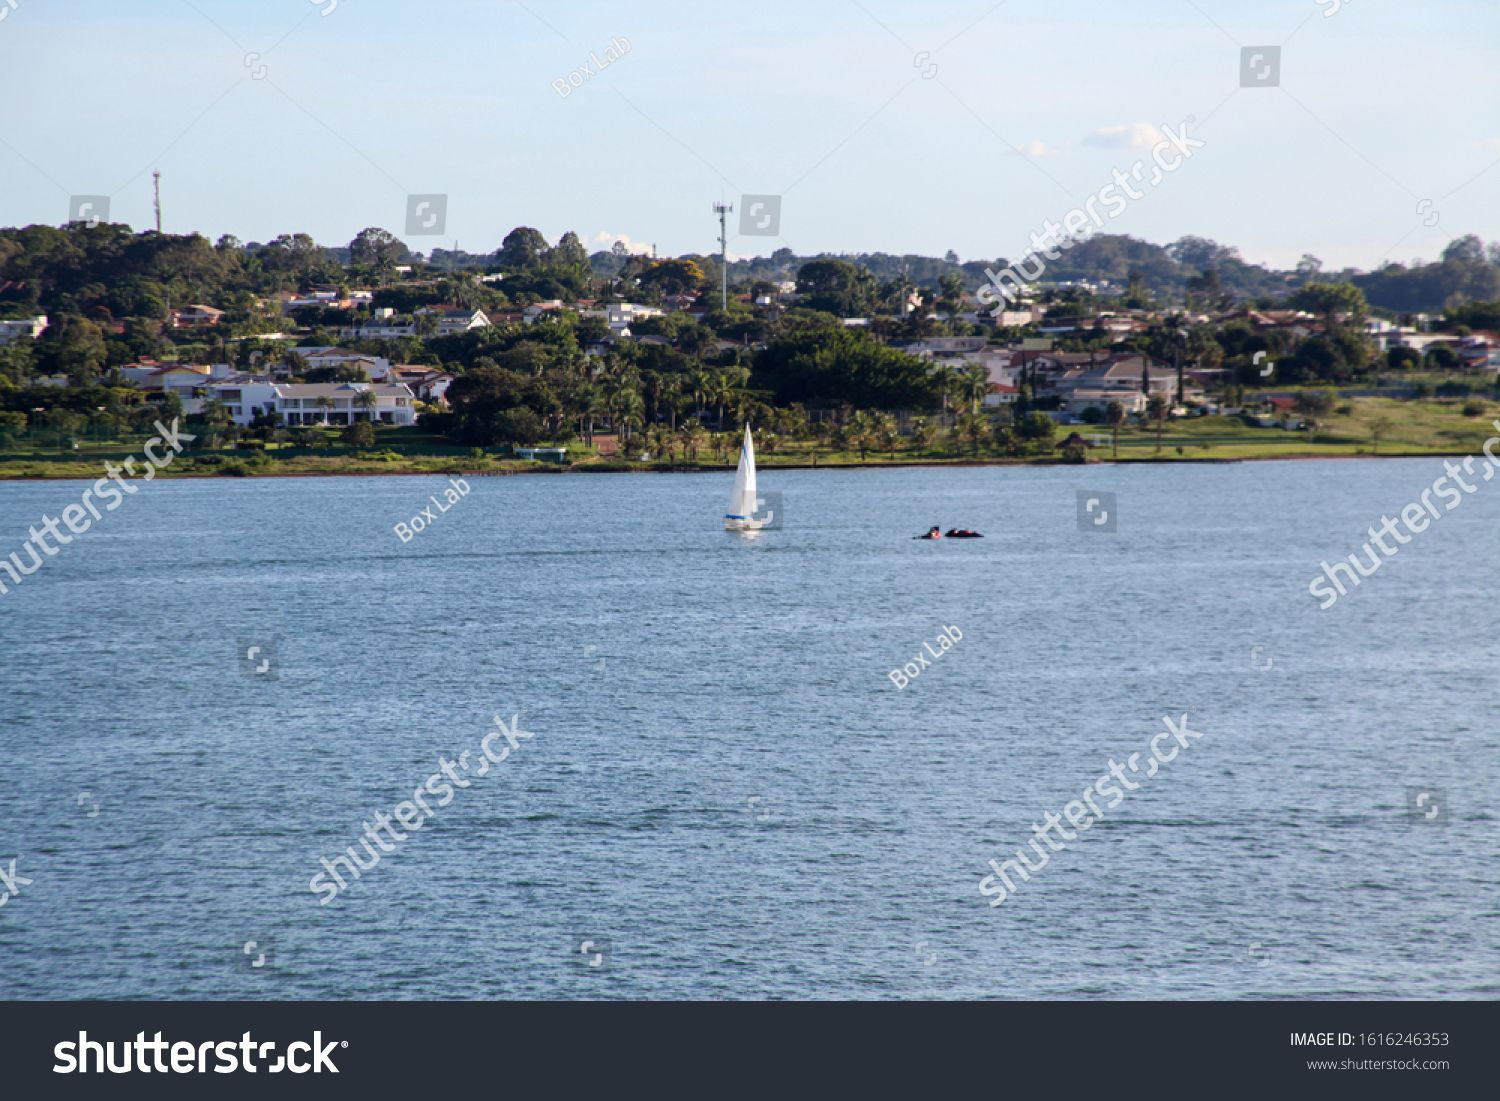 A sailboat on Lake Paranoa, an artificial lake formed by the dammed waters of the Parano¨¢ River. Incredible view with leisure and water sports options. In the background a condominium with houses #Ad , #Ad, #dammed#formed#Parano#waters